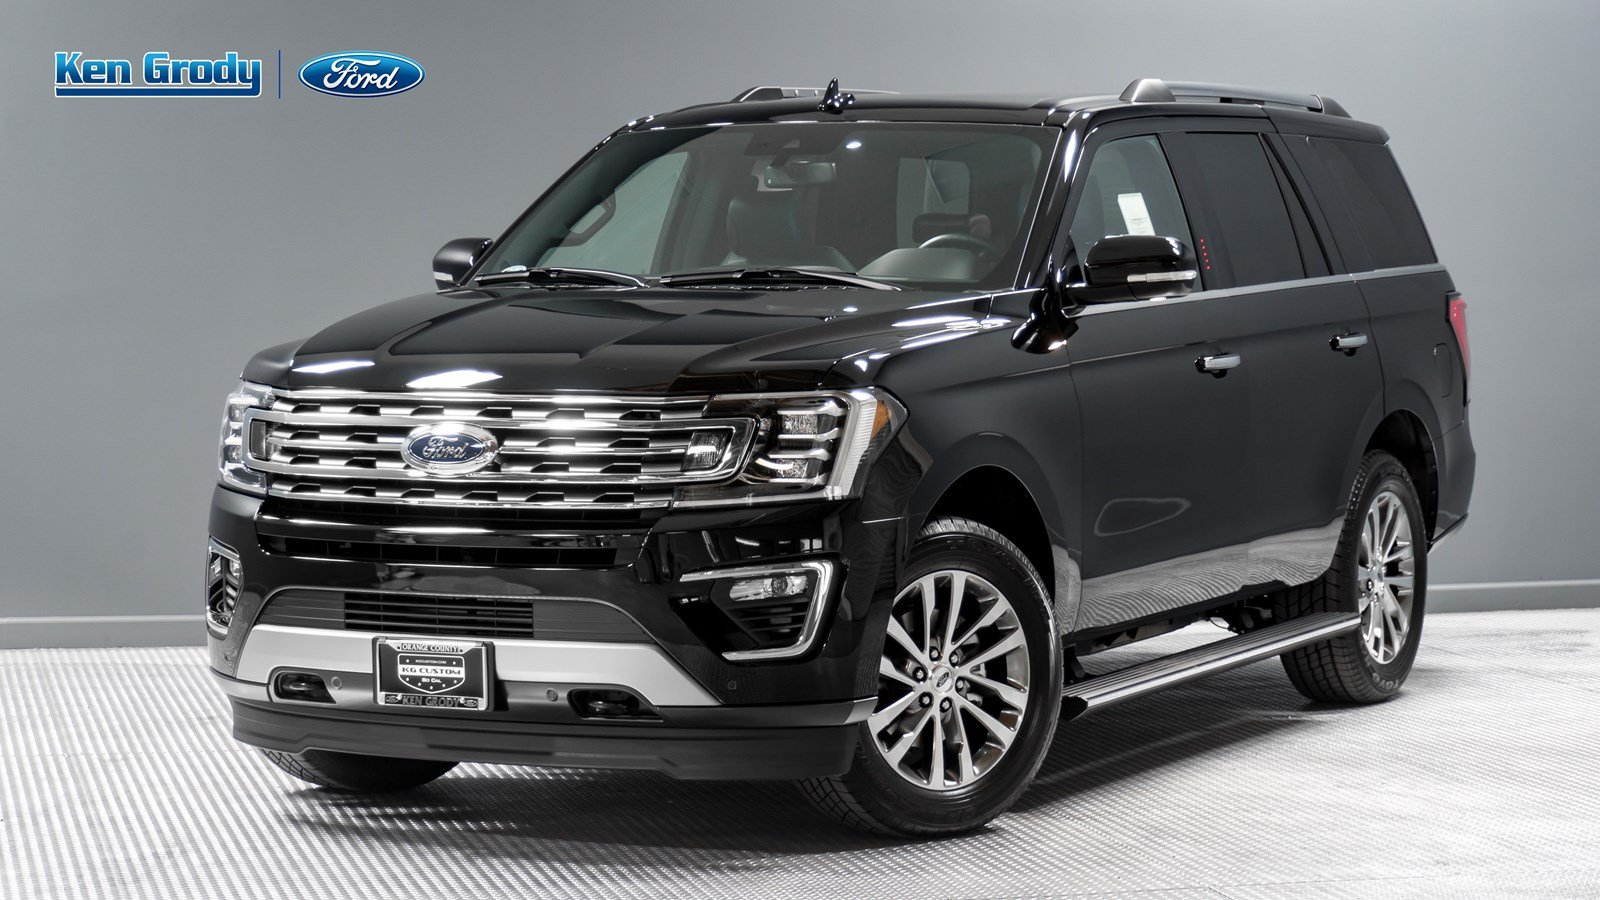 new 2018 ford expedition limited sport utility in carlsbad 90785 ken grody ford carlsbad. Black Bedroom Furniture Sets. Home Design Ideas